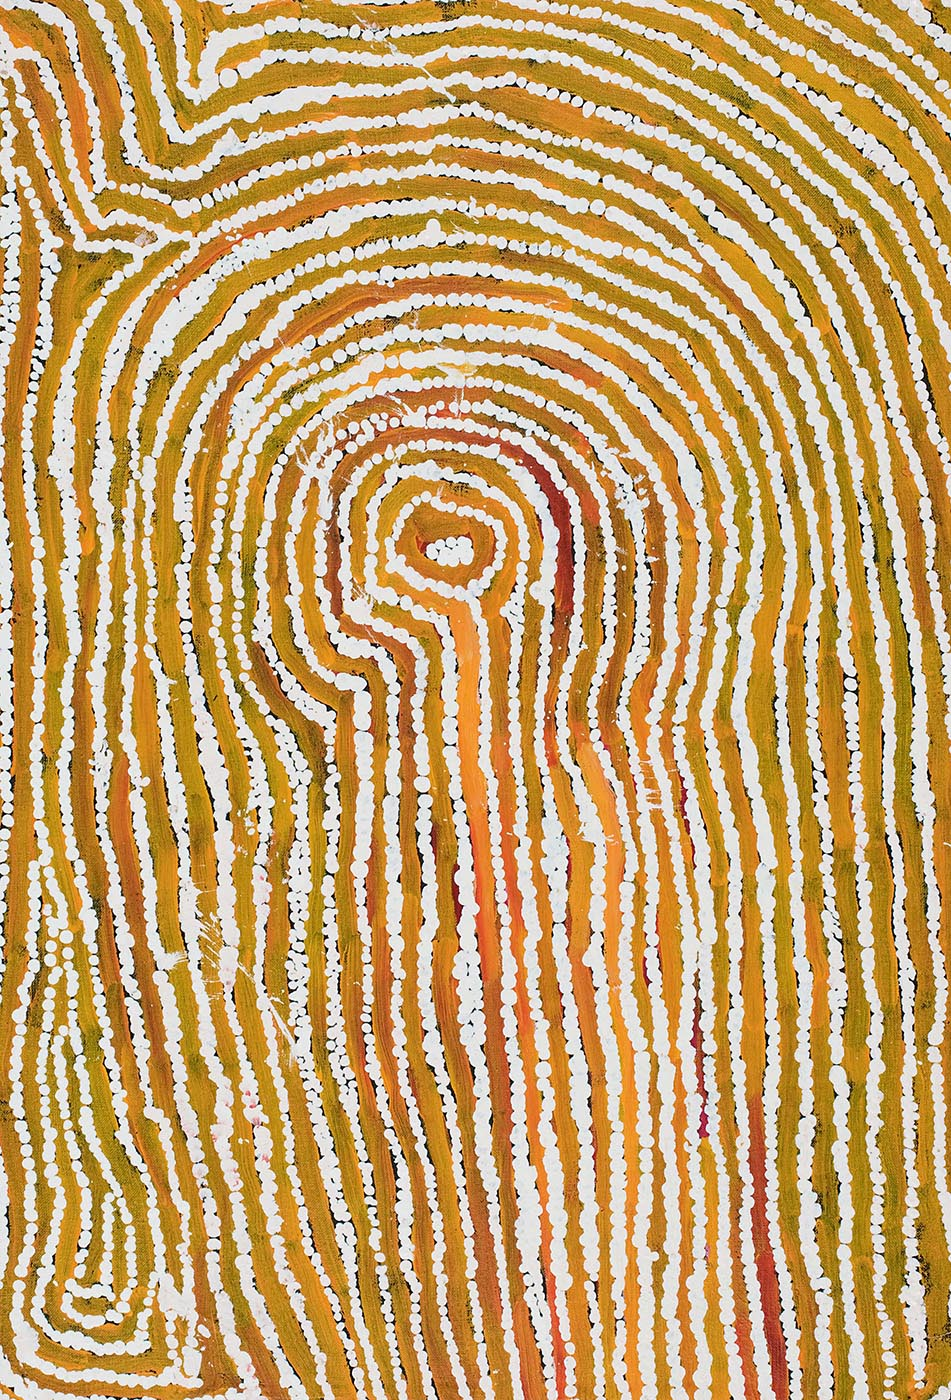 A rectangular painting on brown linen with yellow-brown multiple lines in an upside down U shape divided by white dotted lines. In the centre is a circle with white dots while to the left side the lines change direction. - click to view larger image